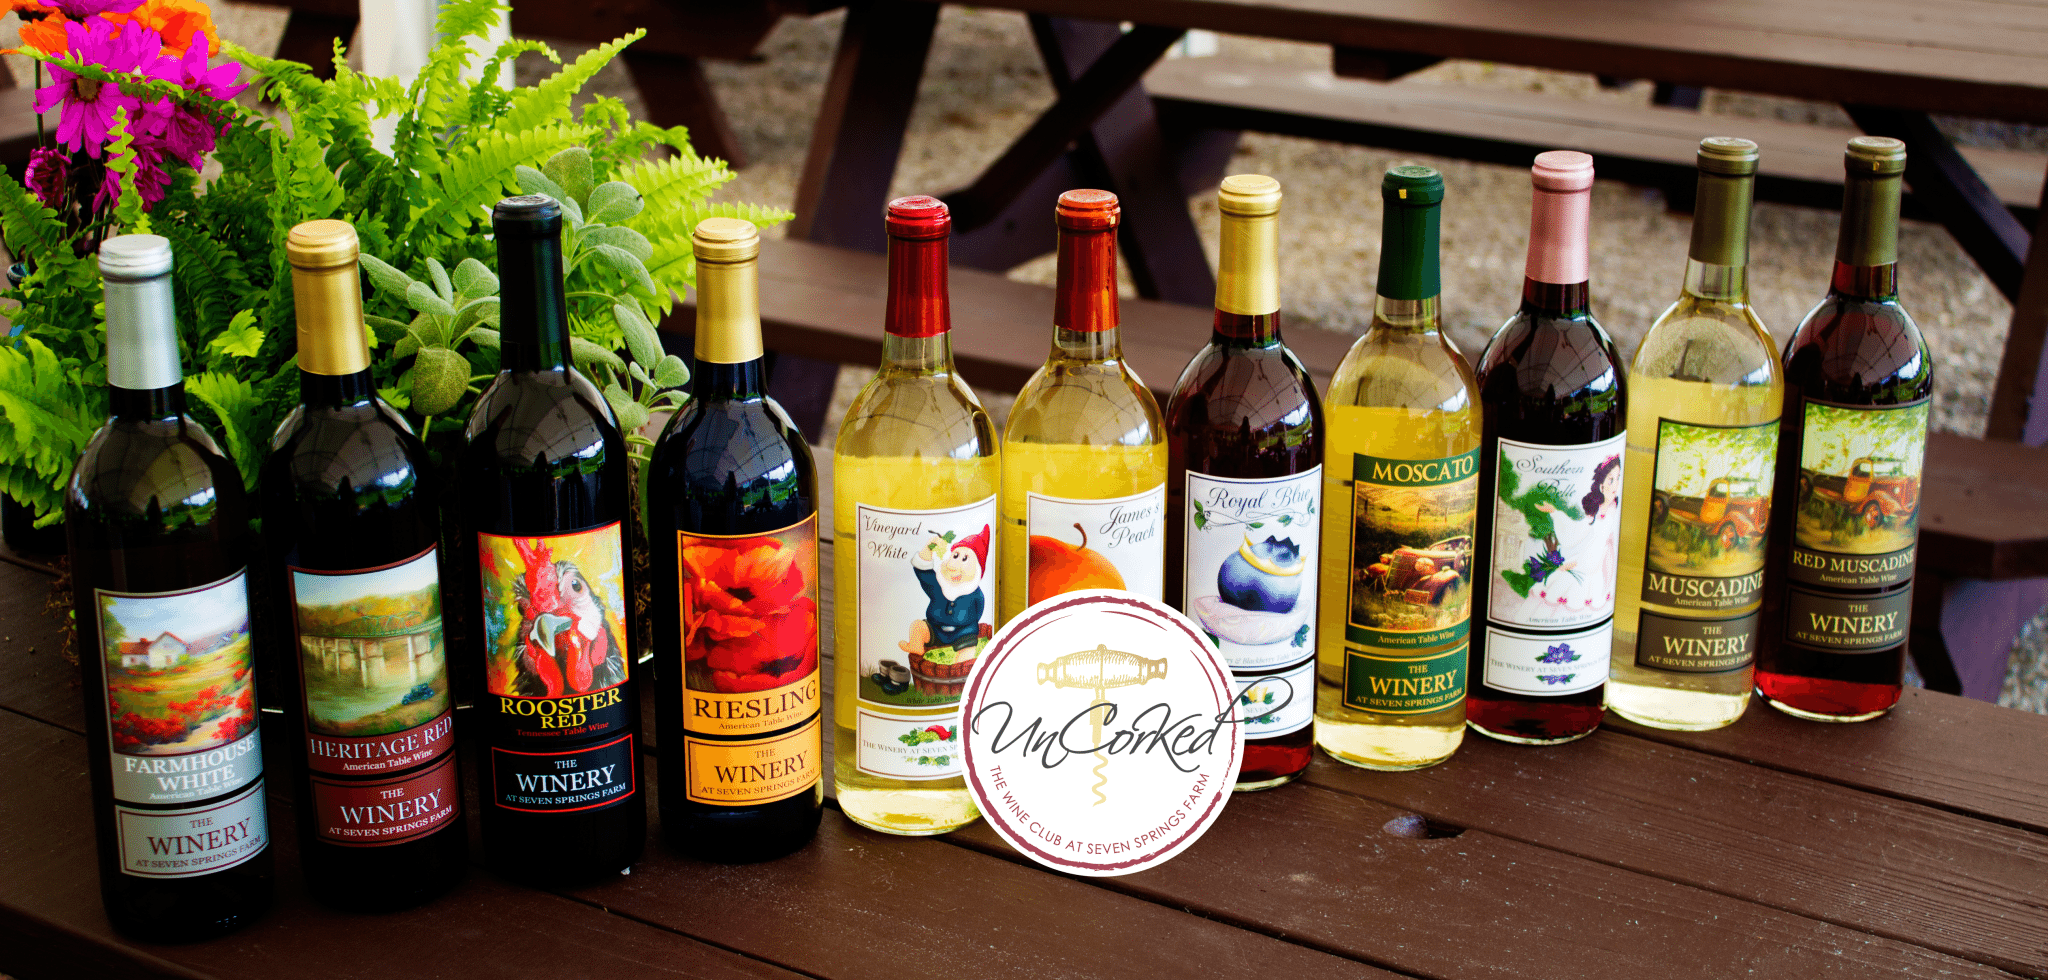 Join UnCorked, The Wine Club at Seven Springs Farm